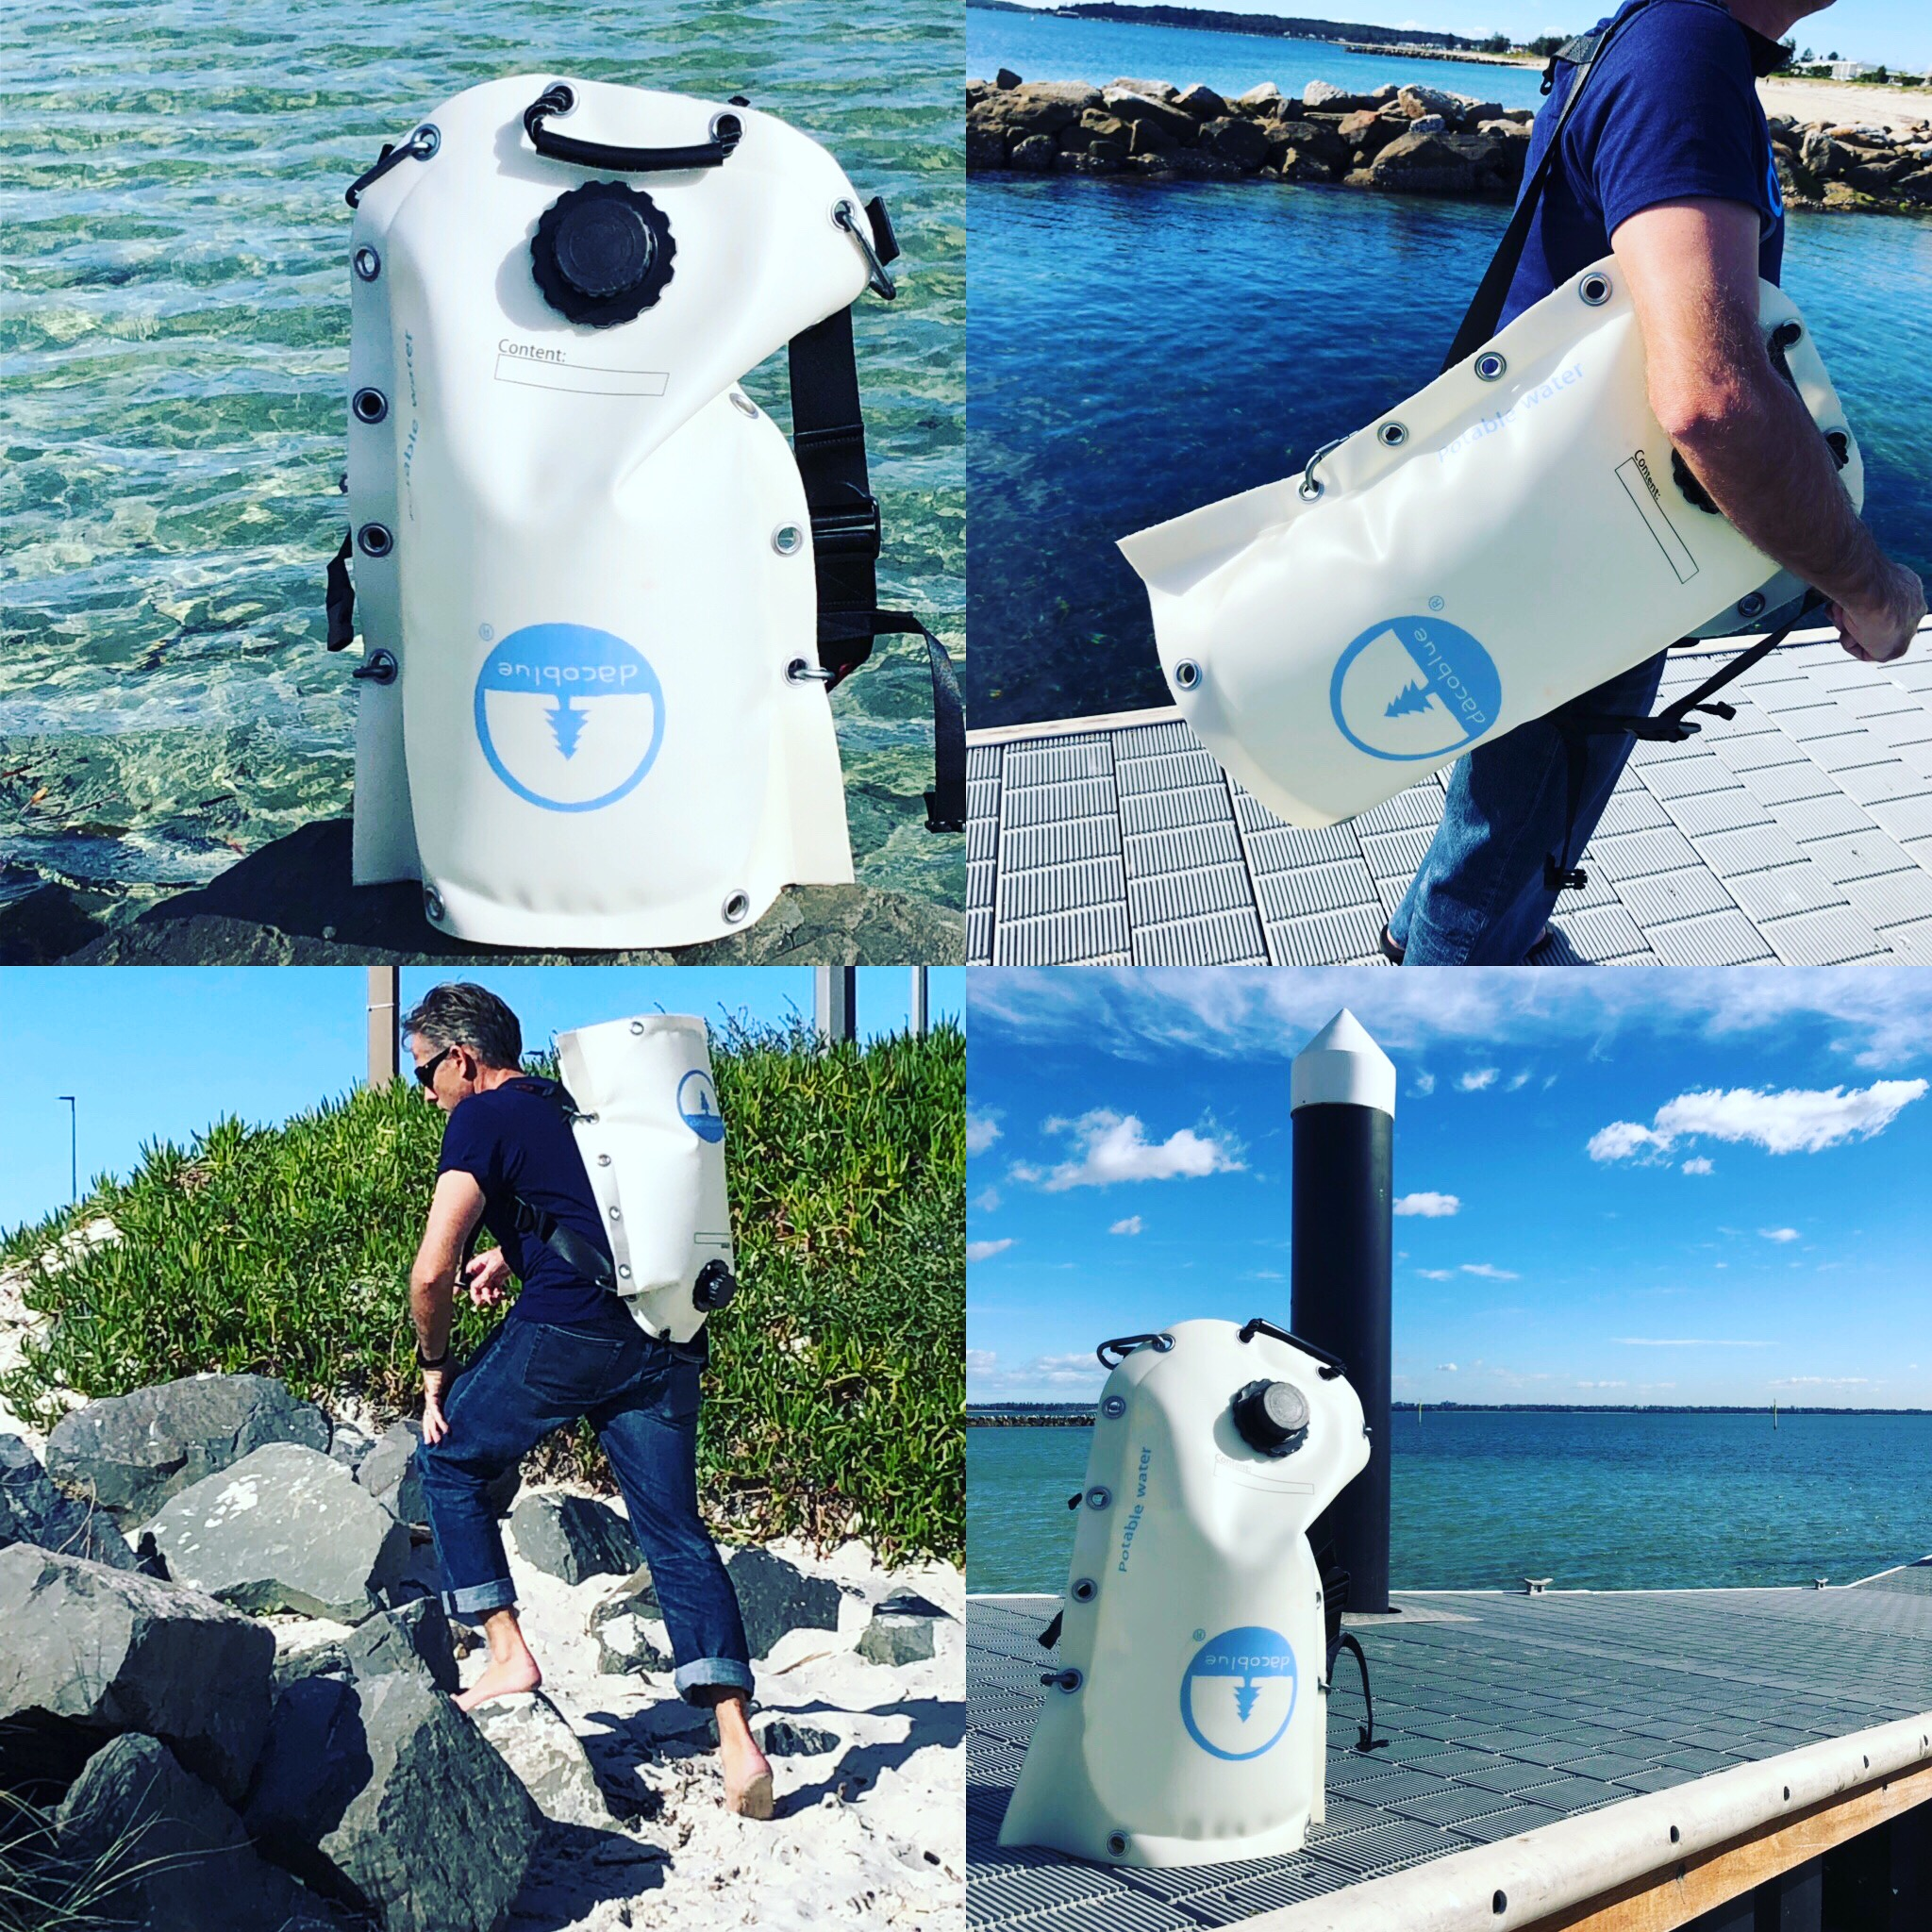 Dacoblue Flexible Jerry Can Backpacks for Camping Sailing and Adventure From Ocean Active